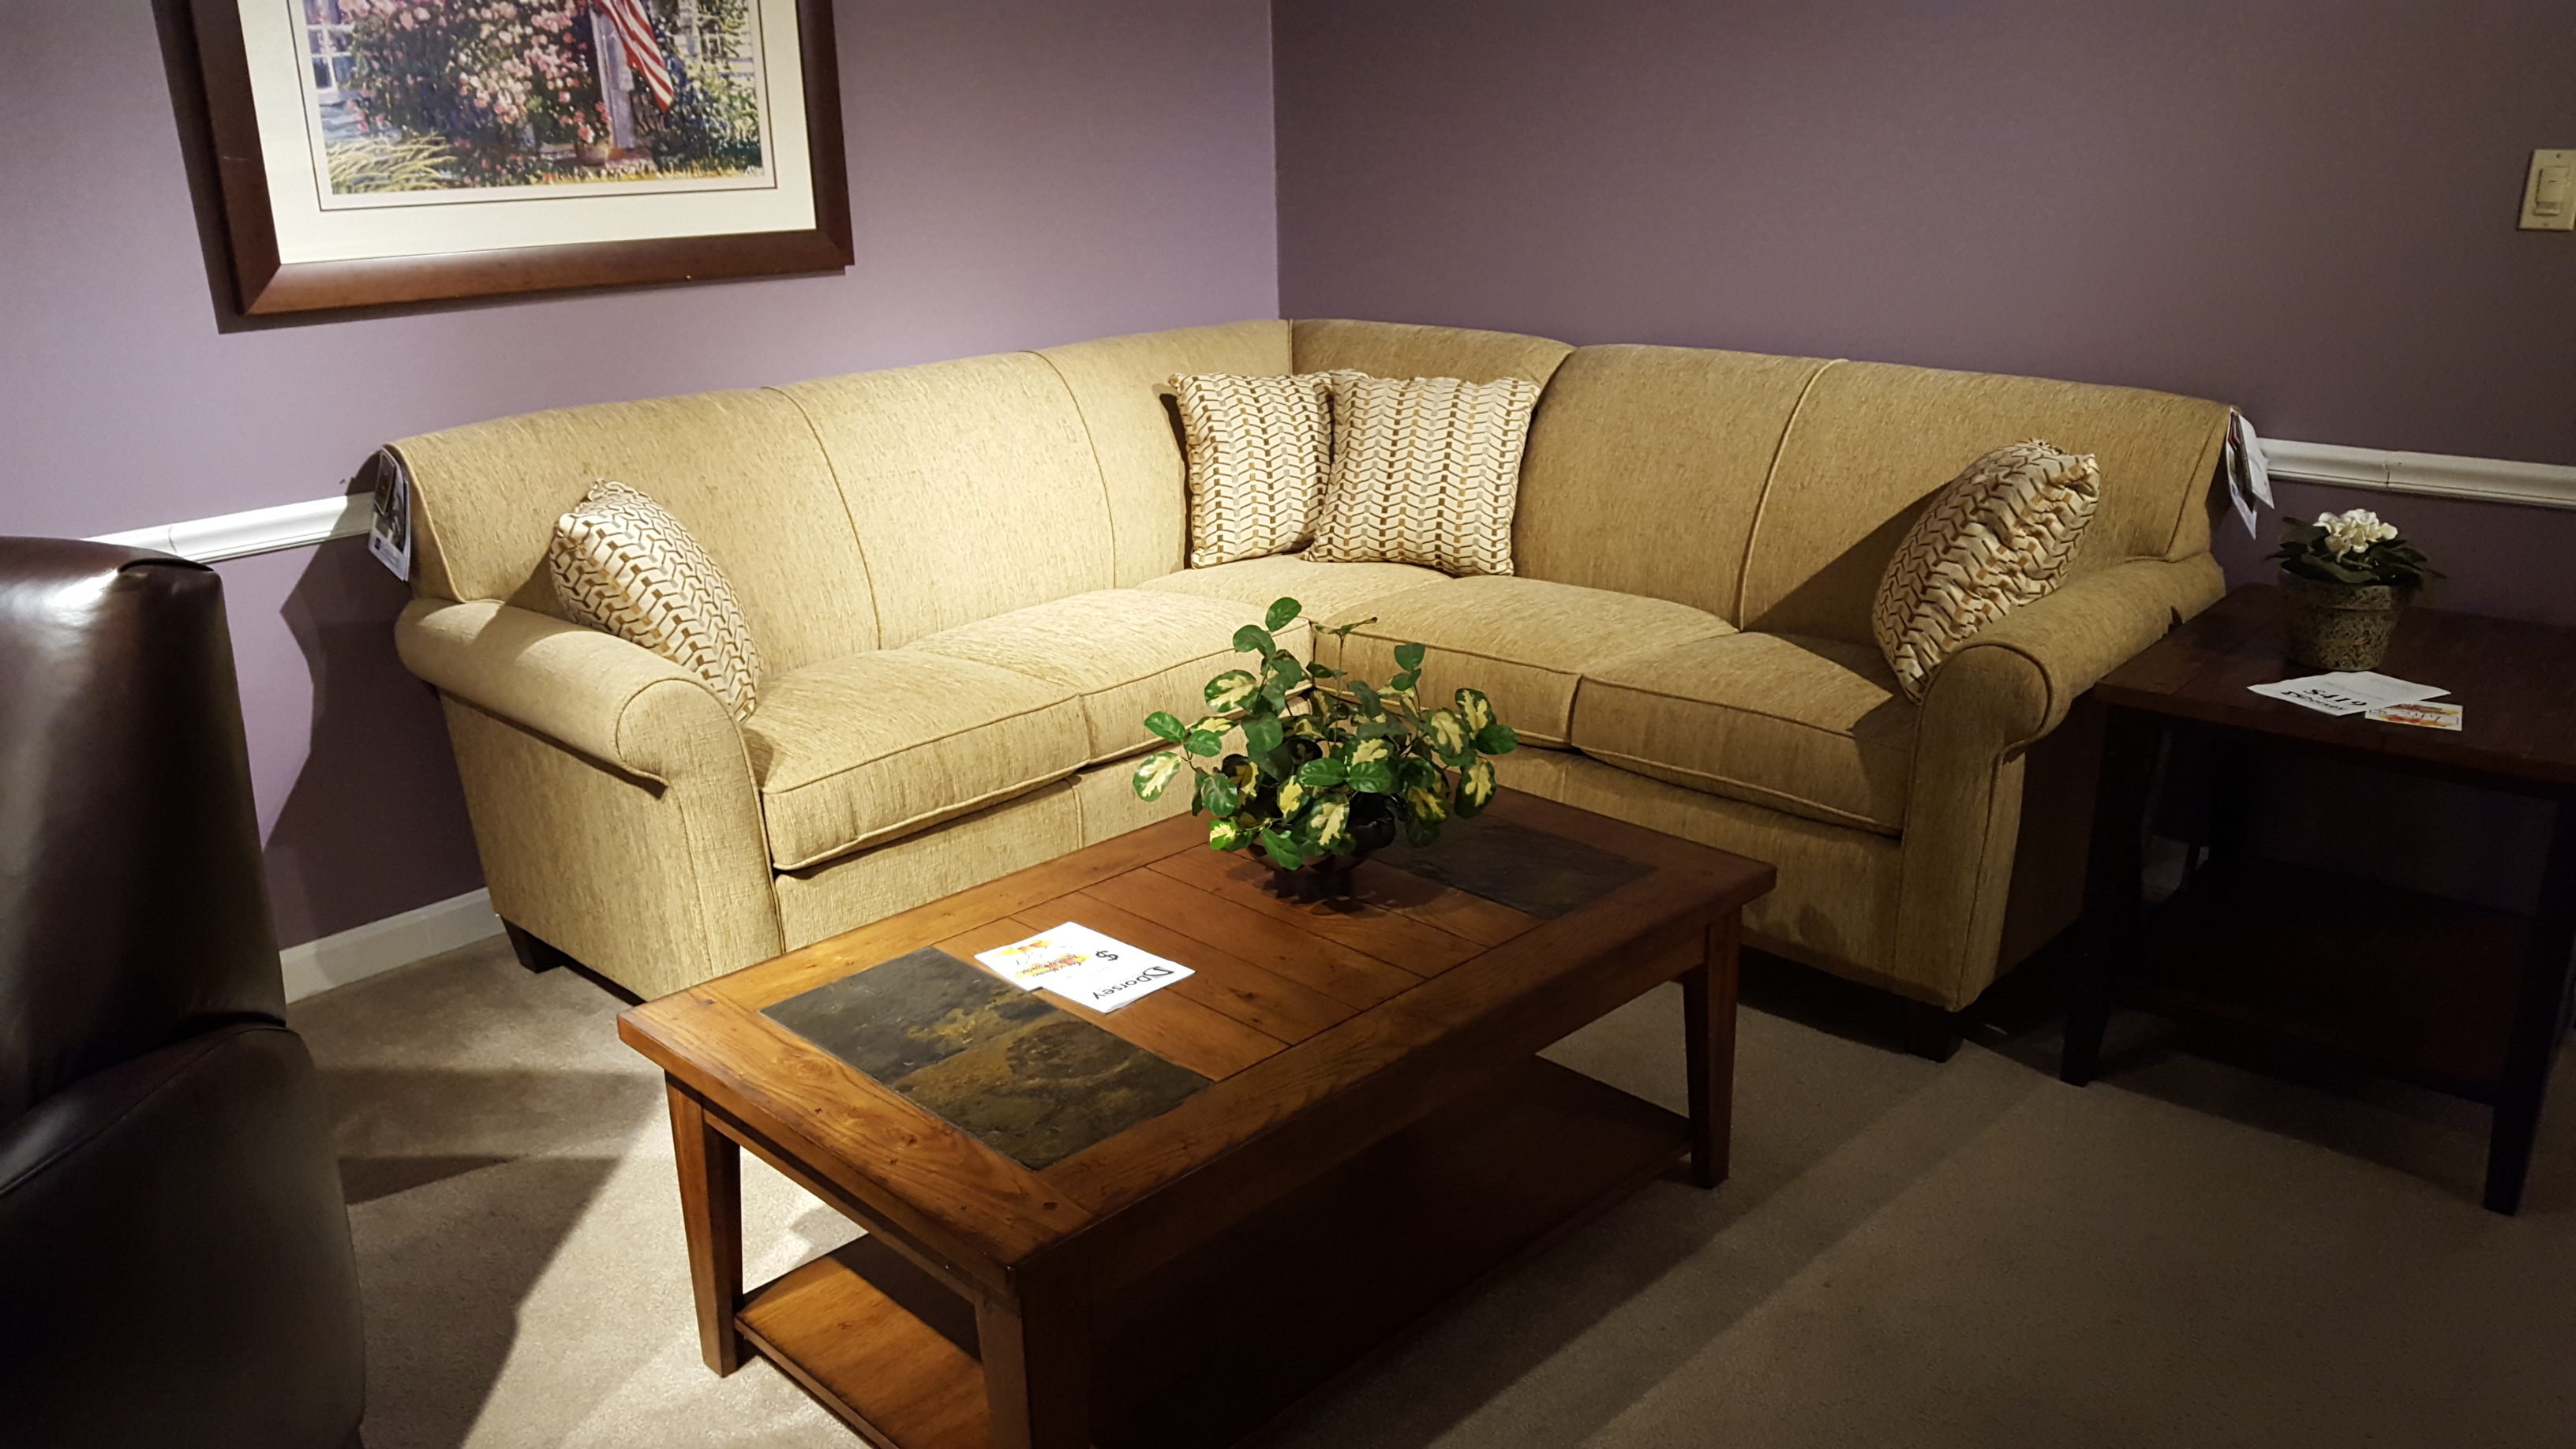 Flexsteel 5990 Sectional Furniture Store Bangor Maine